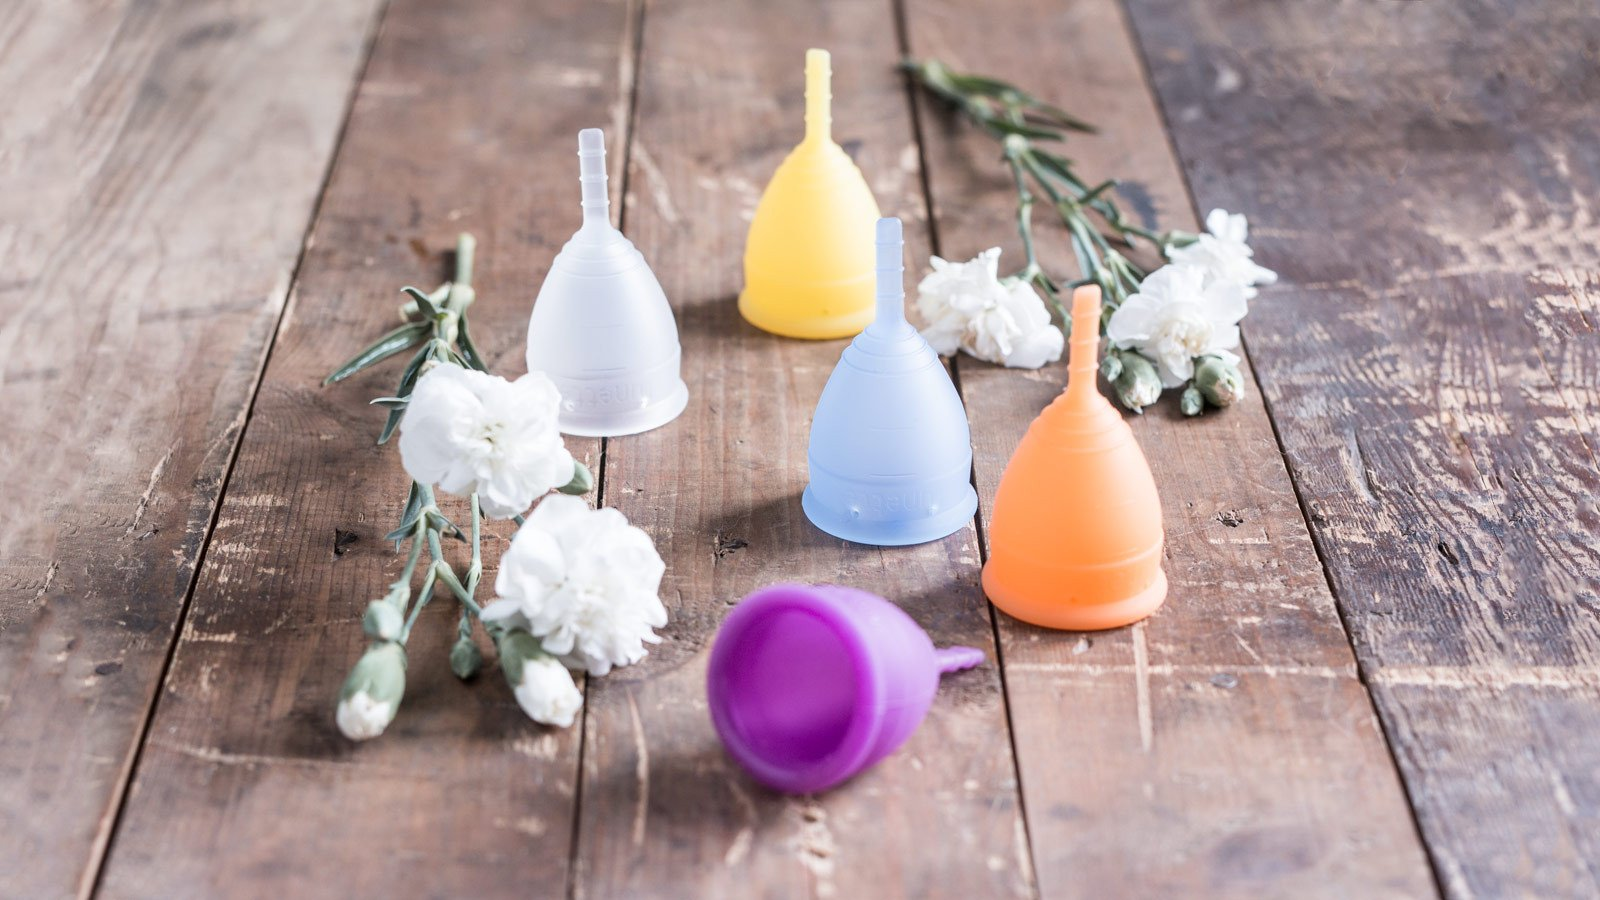 Lunette Cup - I'm hesitant to try this but I am interested in making the switch for less waste, 12 hours of use, and less risk of TSS. Shop Here.